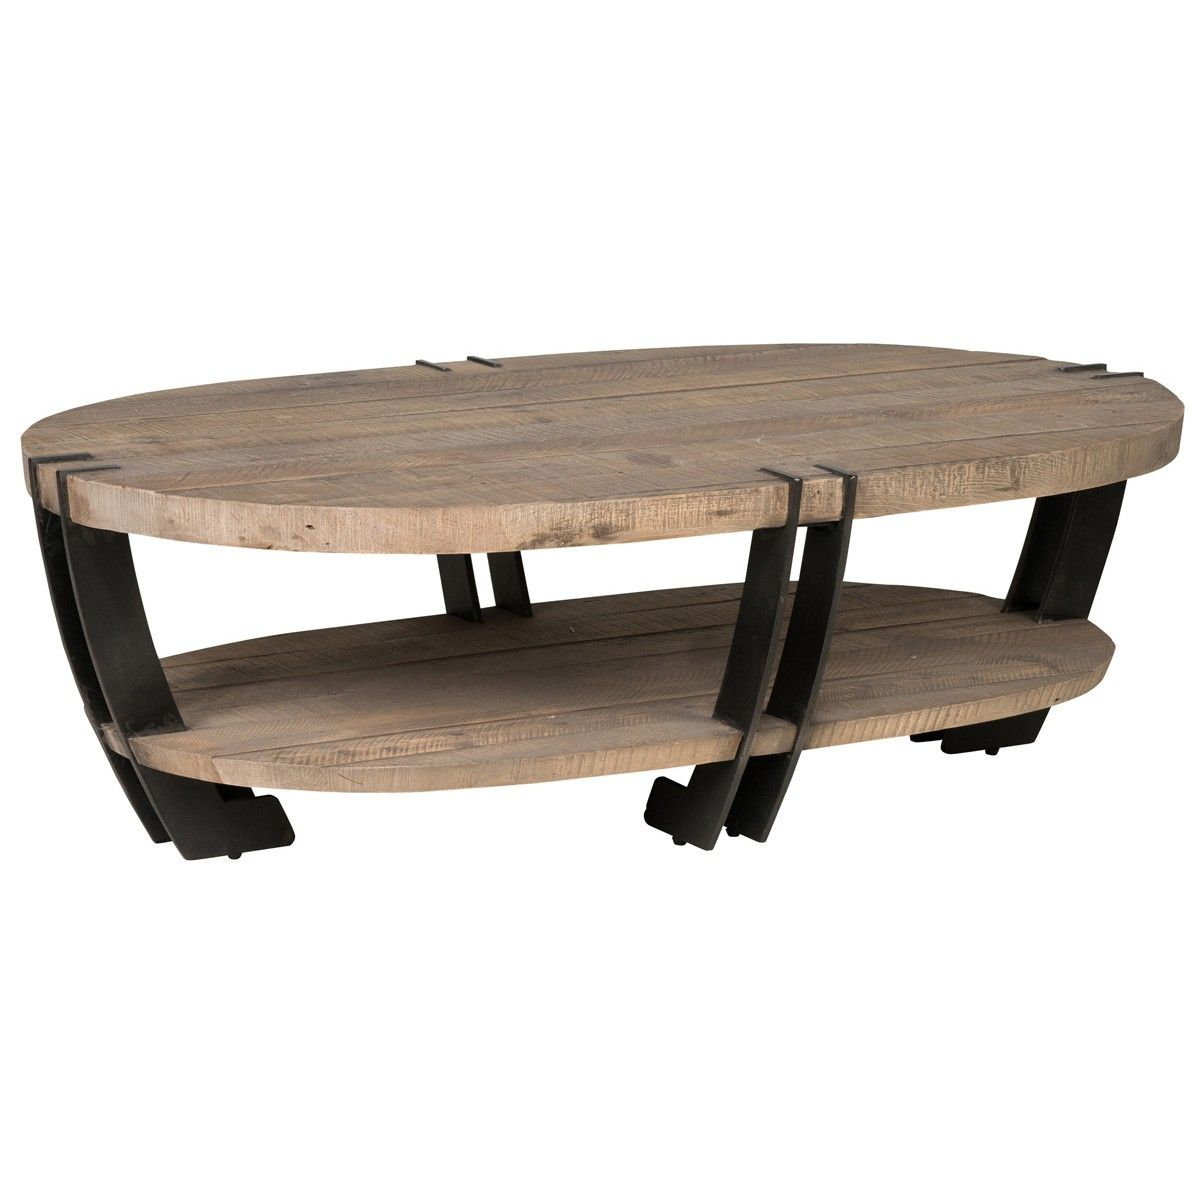 Marcelo Oval Coffee Table Occasional Tables Furniture Products Handcrafted Sustainable Furnish Interieur Woonkamer Industriele Salontafels Salontafel [ 1200 x 1200 Pixel ]